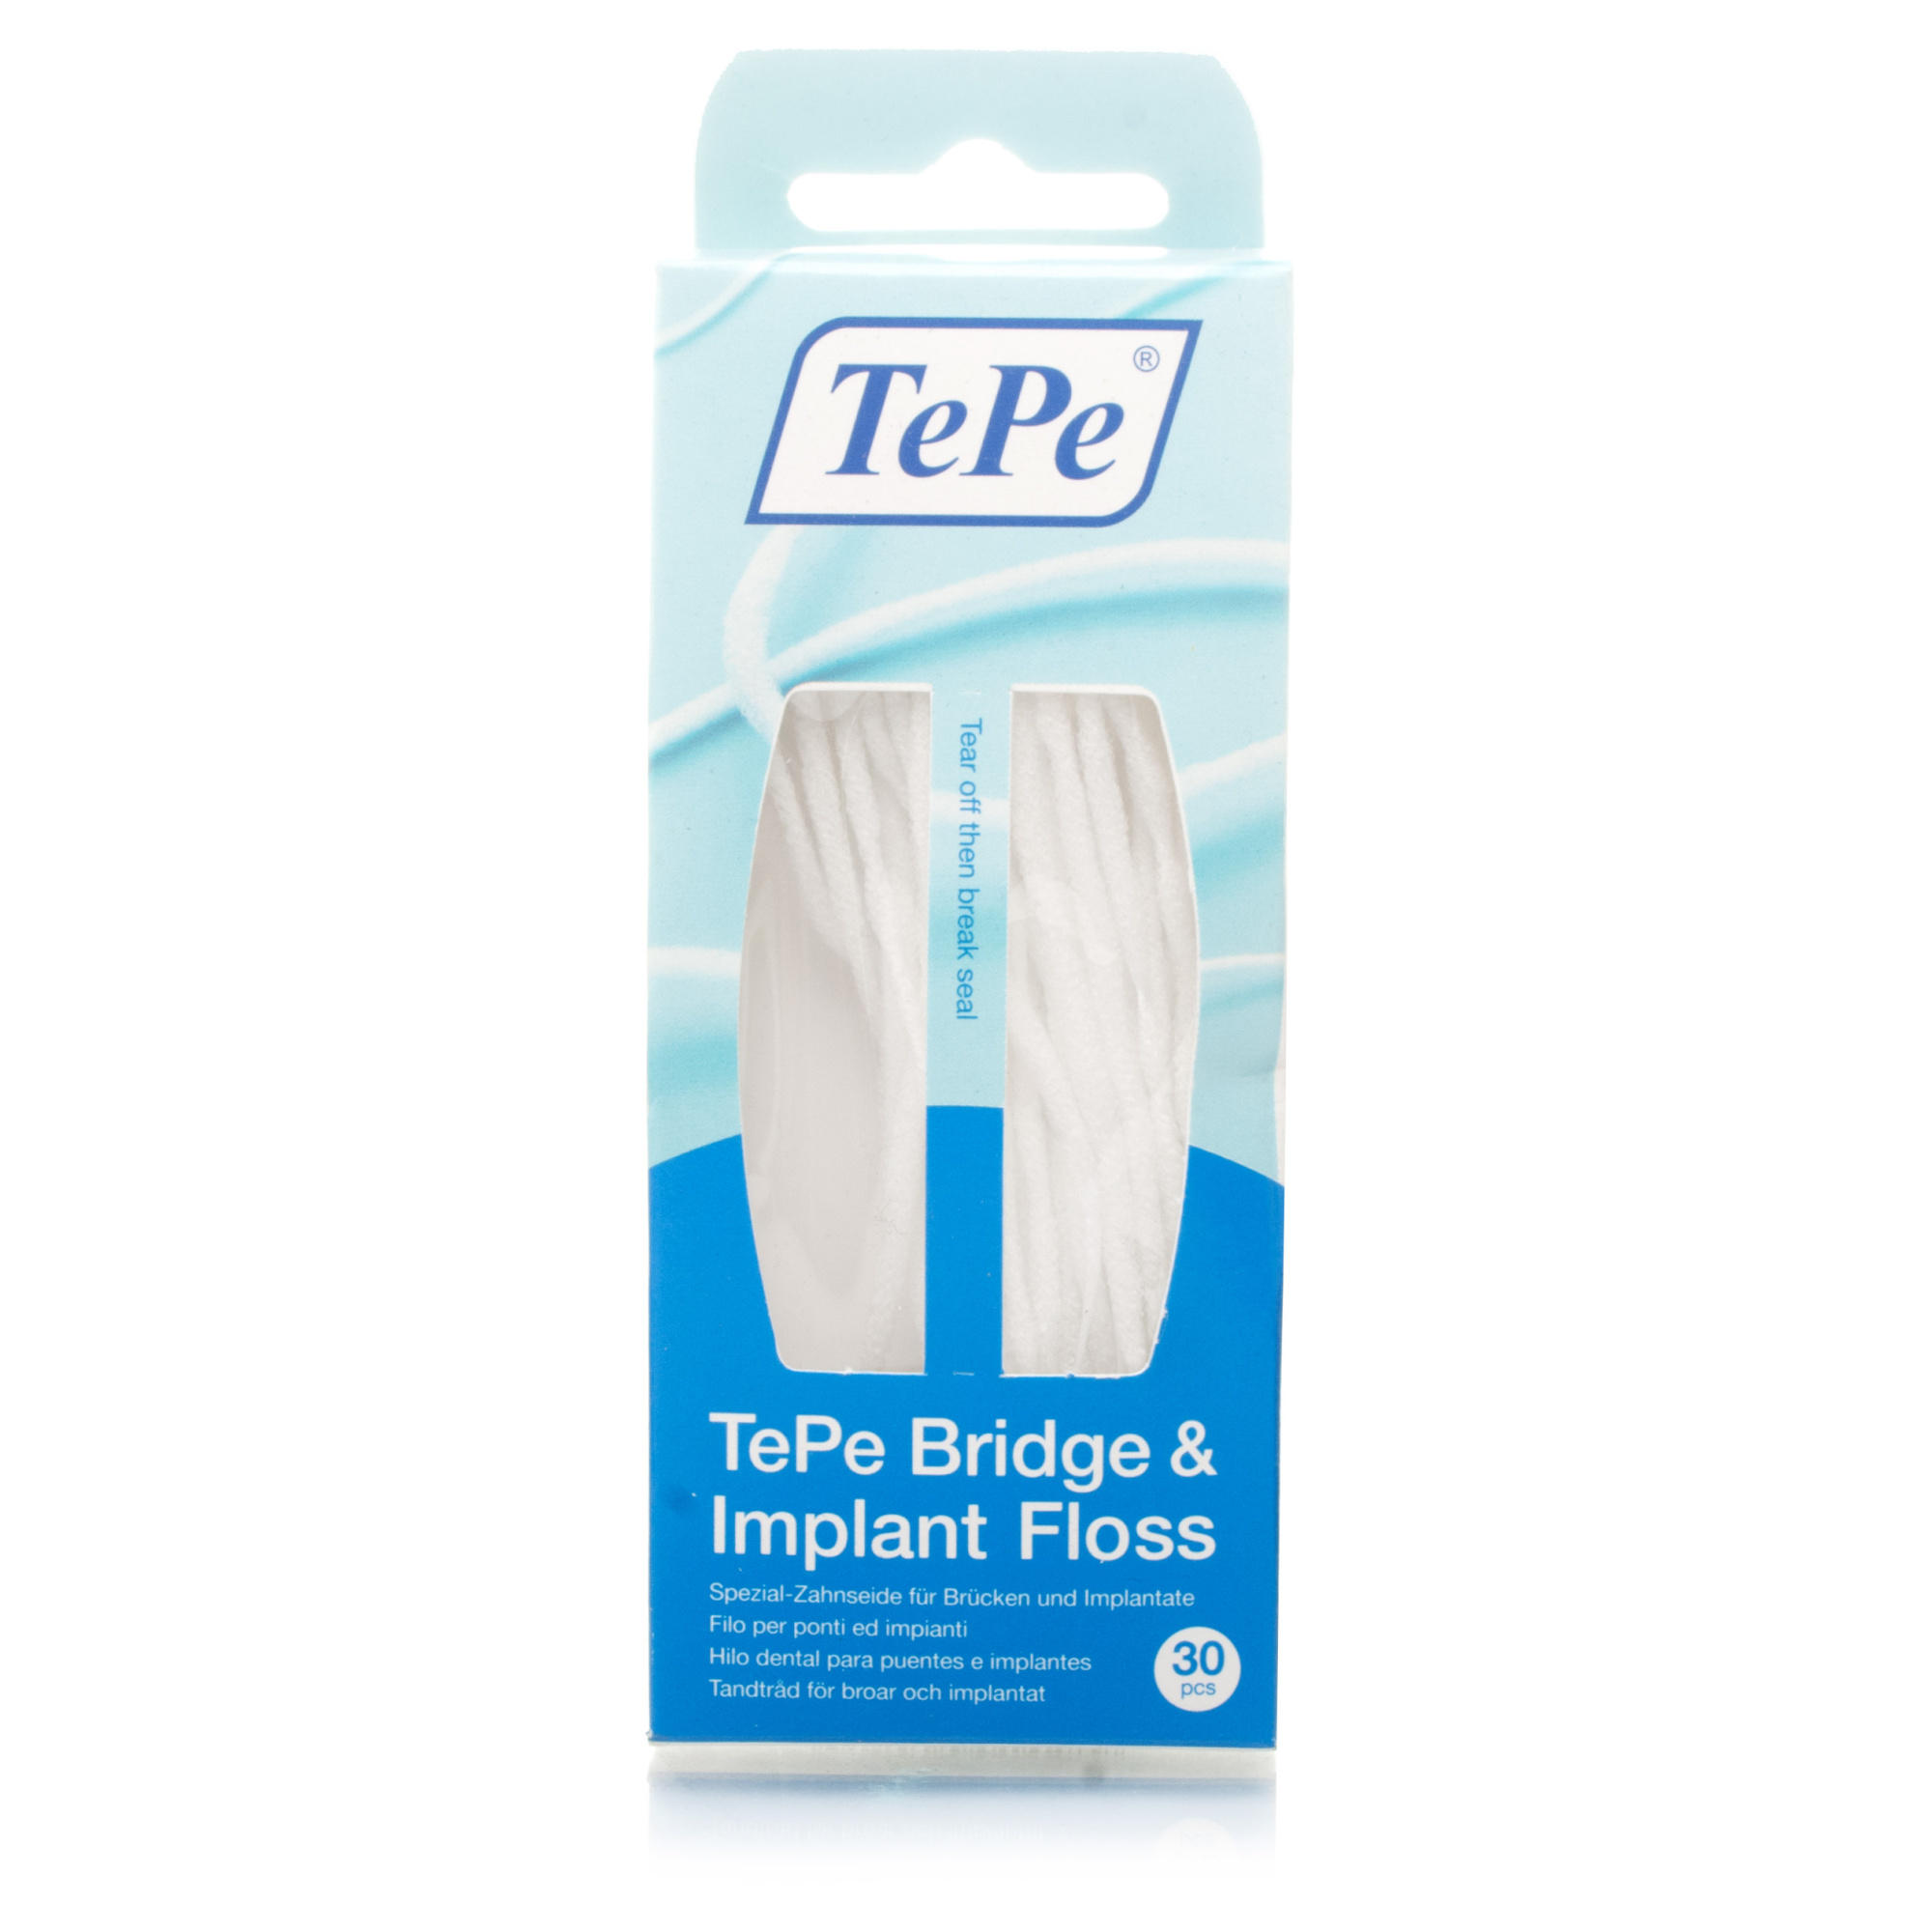 TePe Bridge & Implant Floss 30 stuks